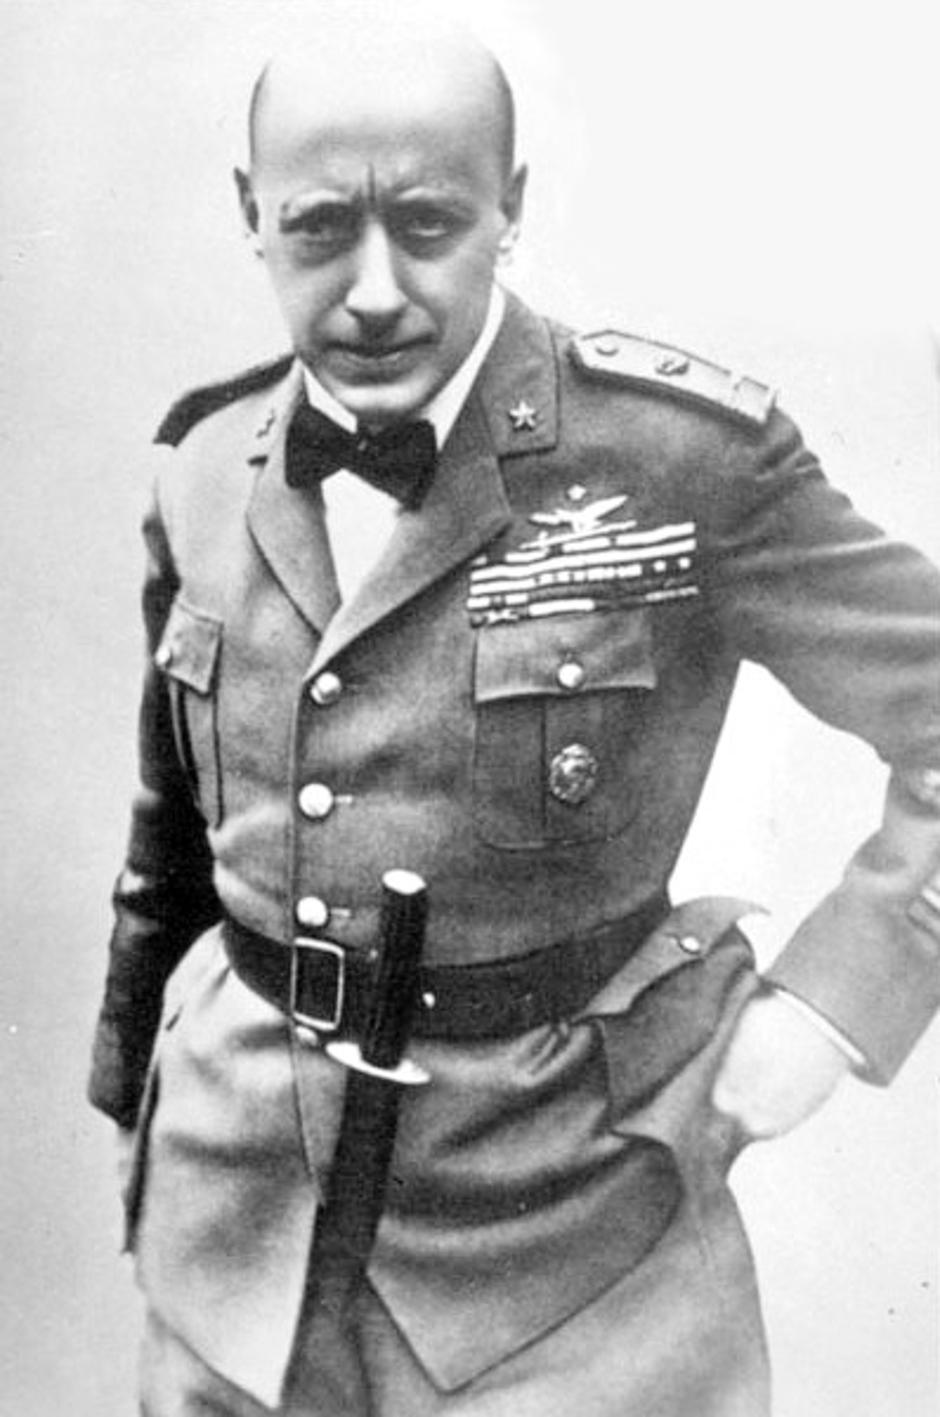 Gabriele D'Annunzio | Author: public domain